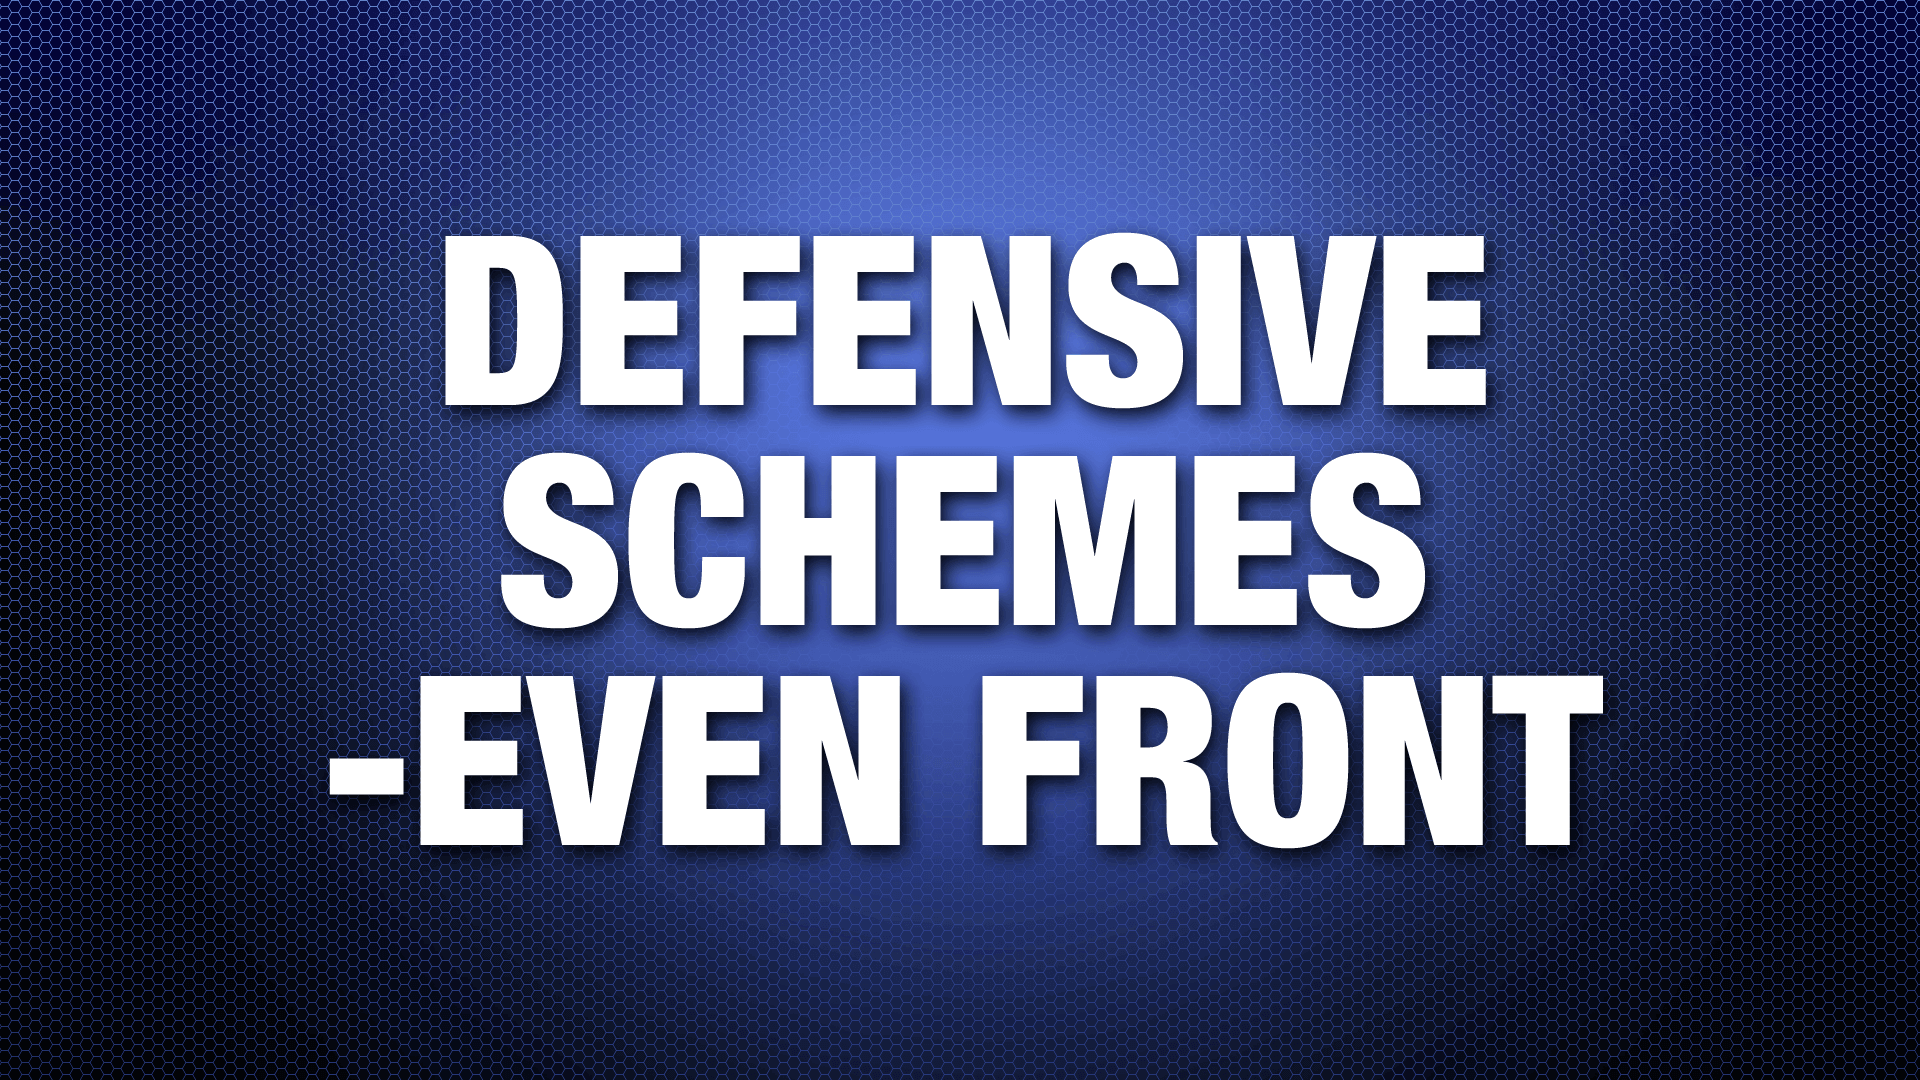 DefensiveSchemes-EvenFront